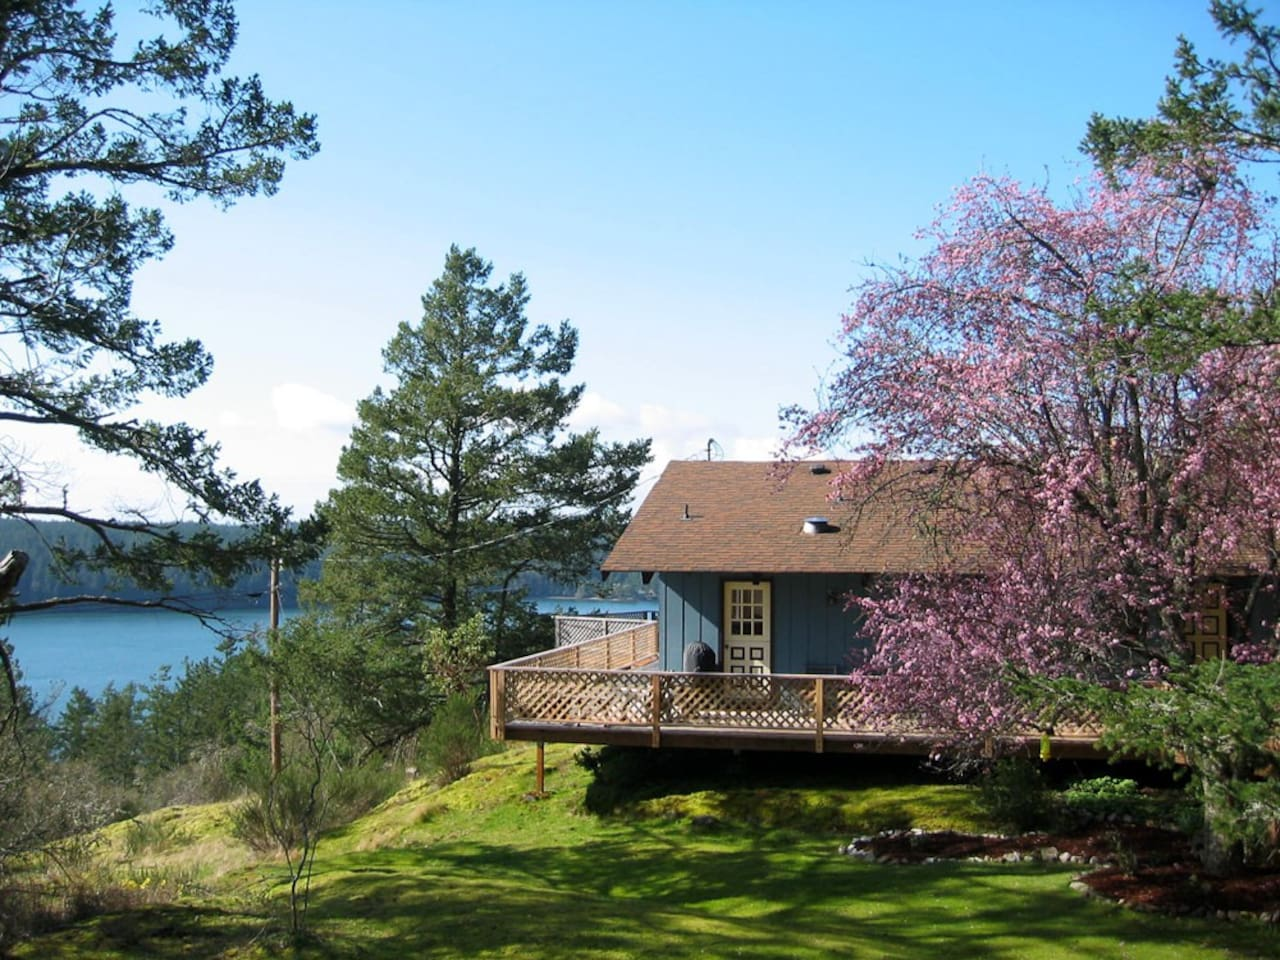 From Orcas Hill House there's a view of the ferry landing and boat traffic. The one-level home is perched on natural moss and lichen covered outcoppings, surrounded by decks and madrona trees.